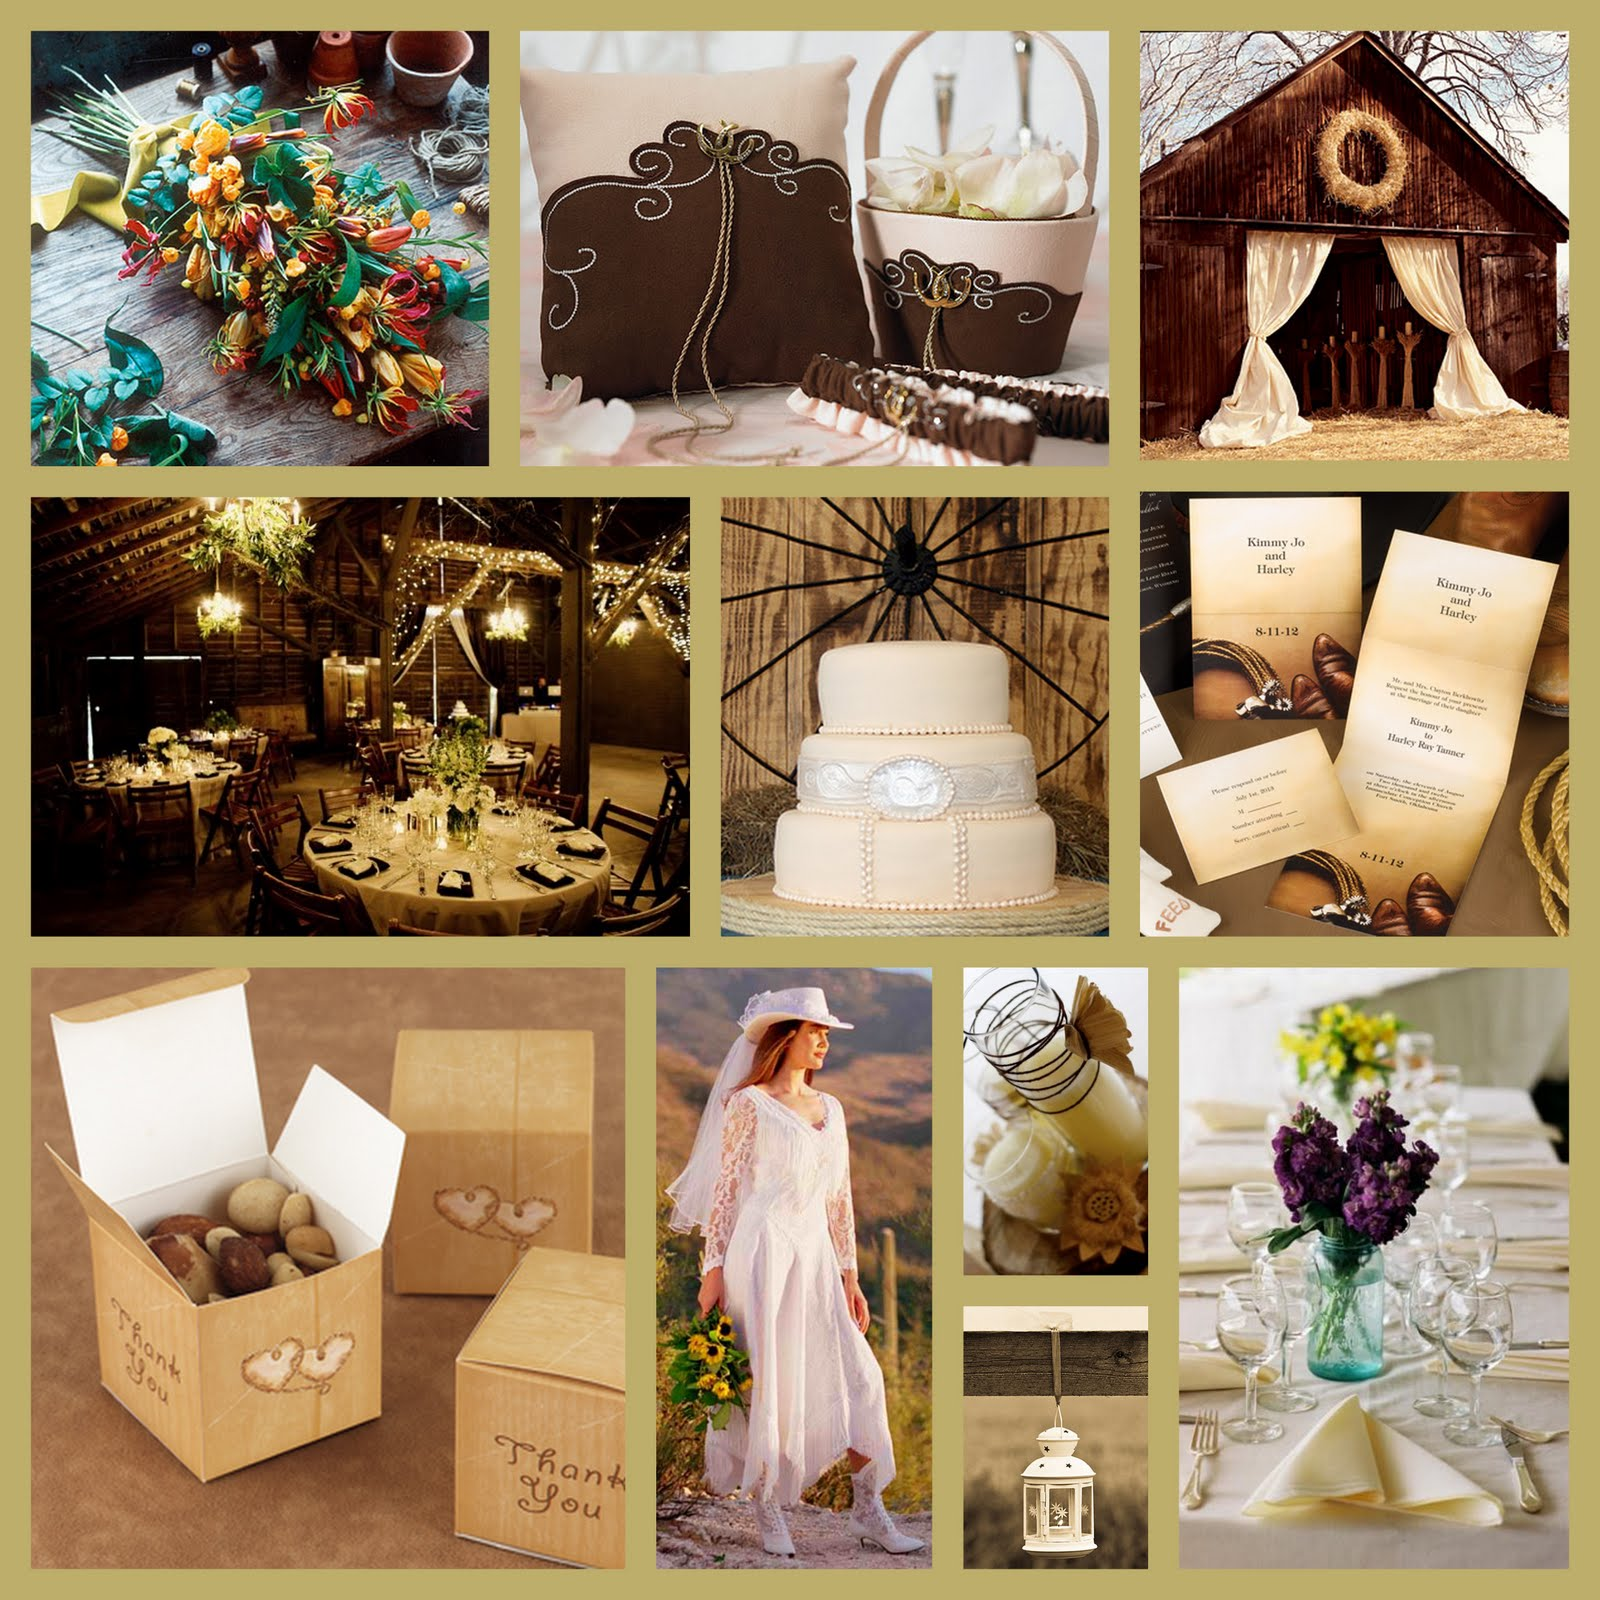 Best Rustic Ideas For Your Wedding: Rustic Wedding Theme Ideas